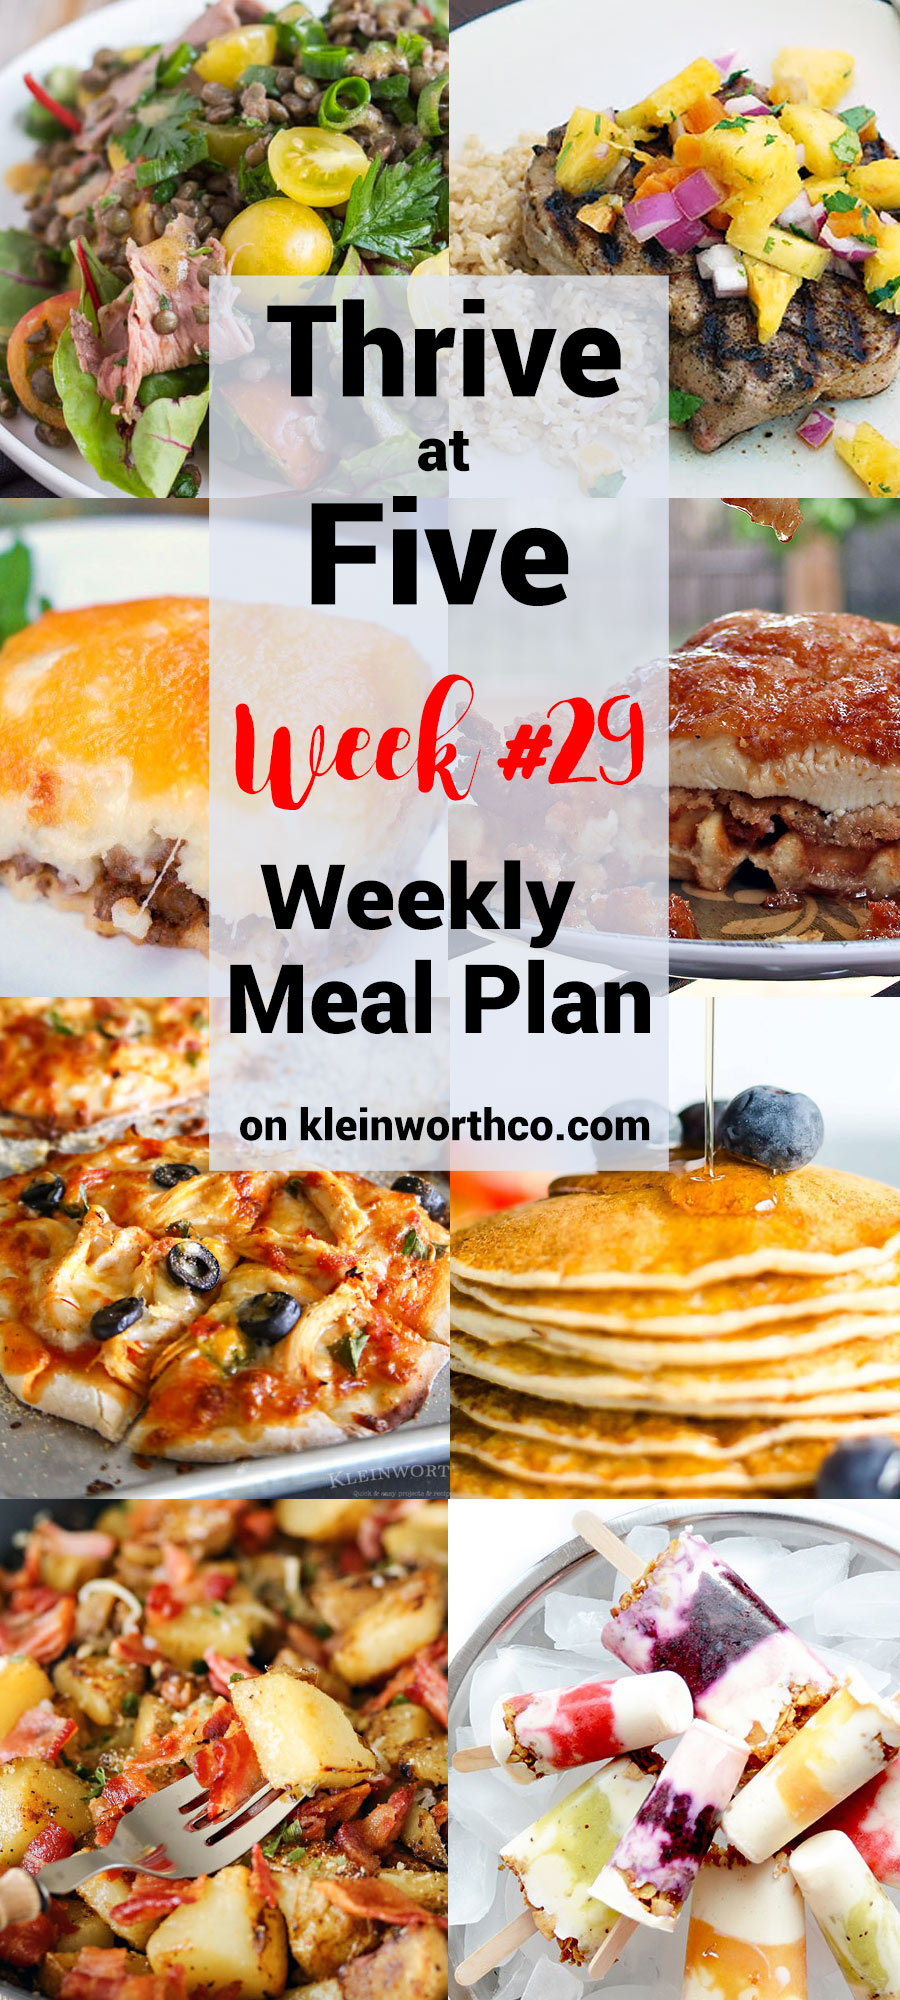 Thrive at Five Meal Plan Week 29